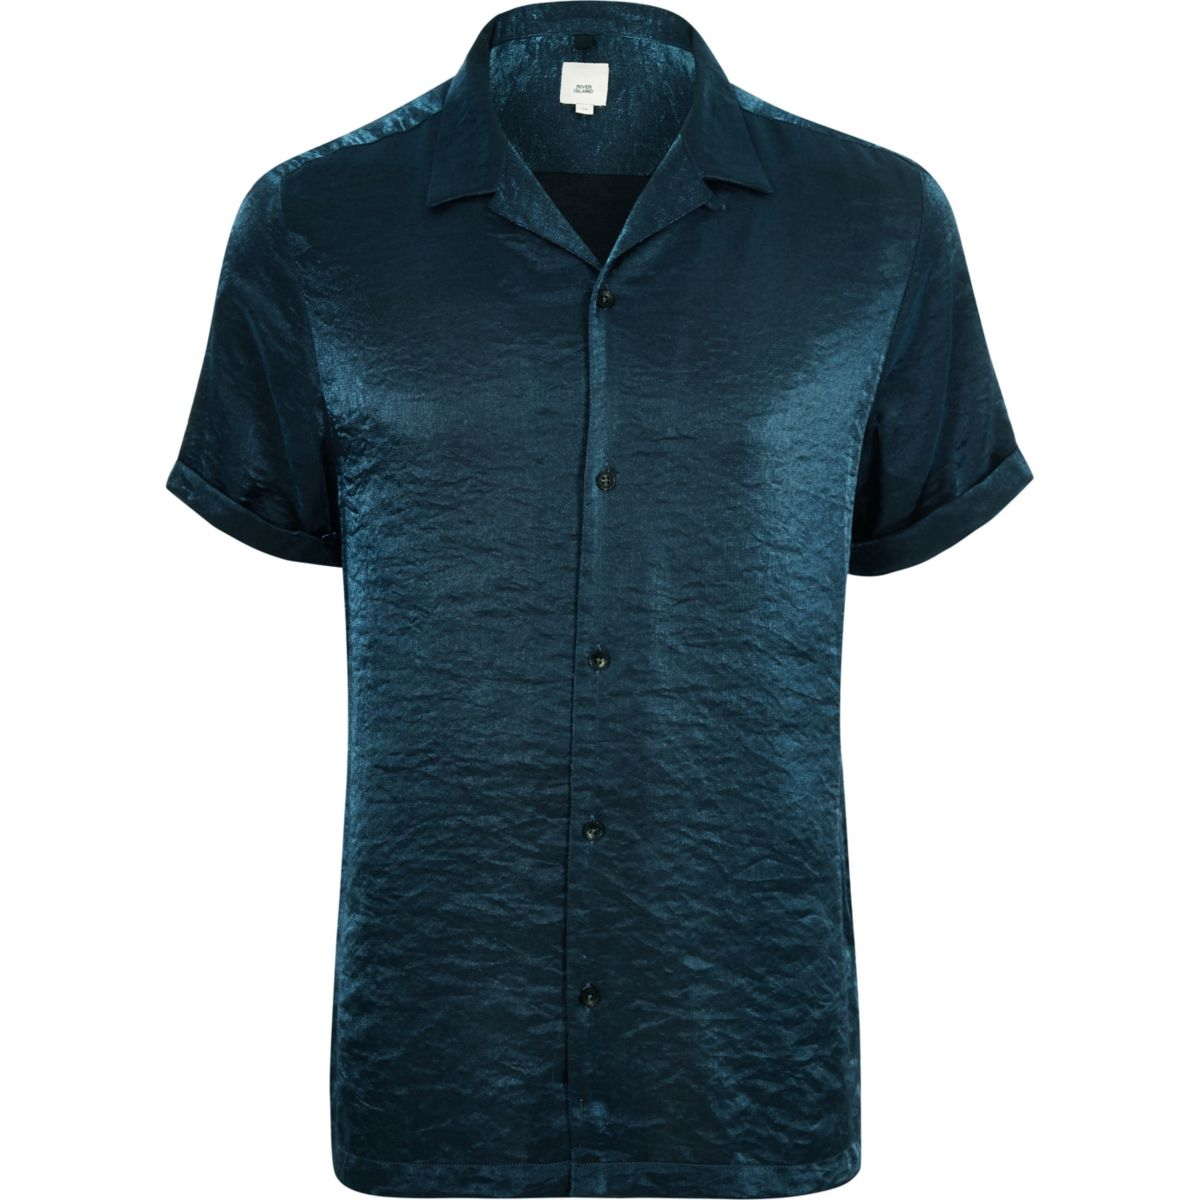 revere shirt sleeve Blue short metallic aWqOxxXnZ